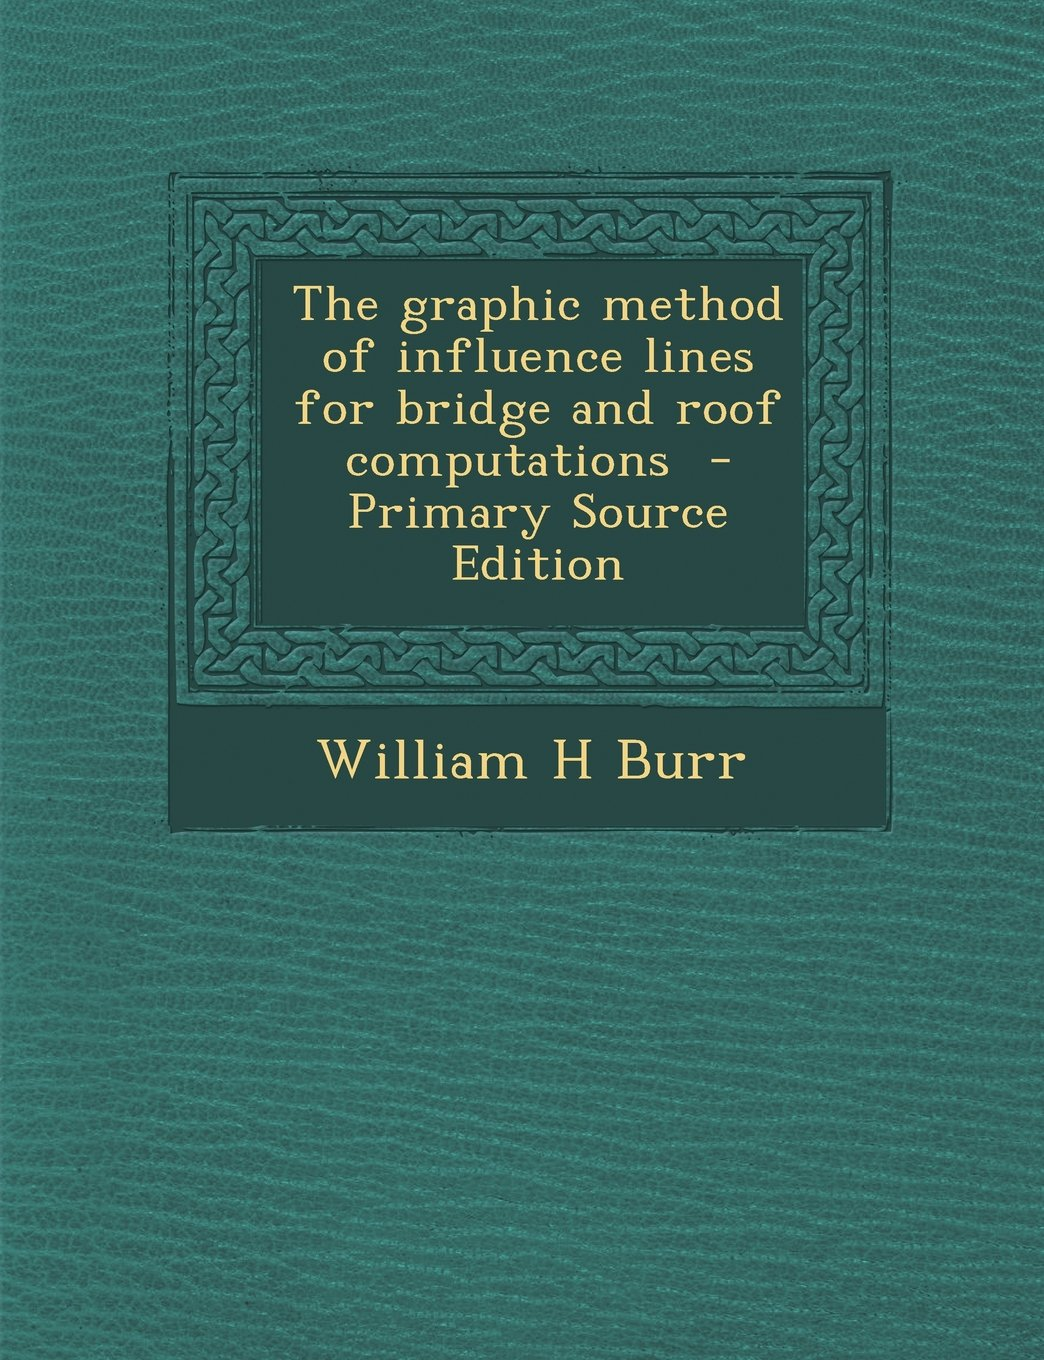 Download The Graphic Method of Influence Lines for Bridge and Roof Computations - Primary Source Edition ebook